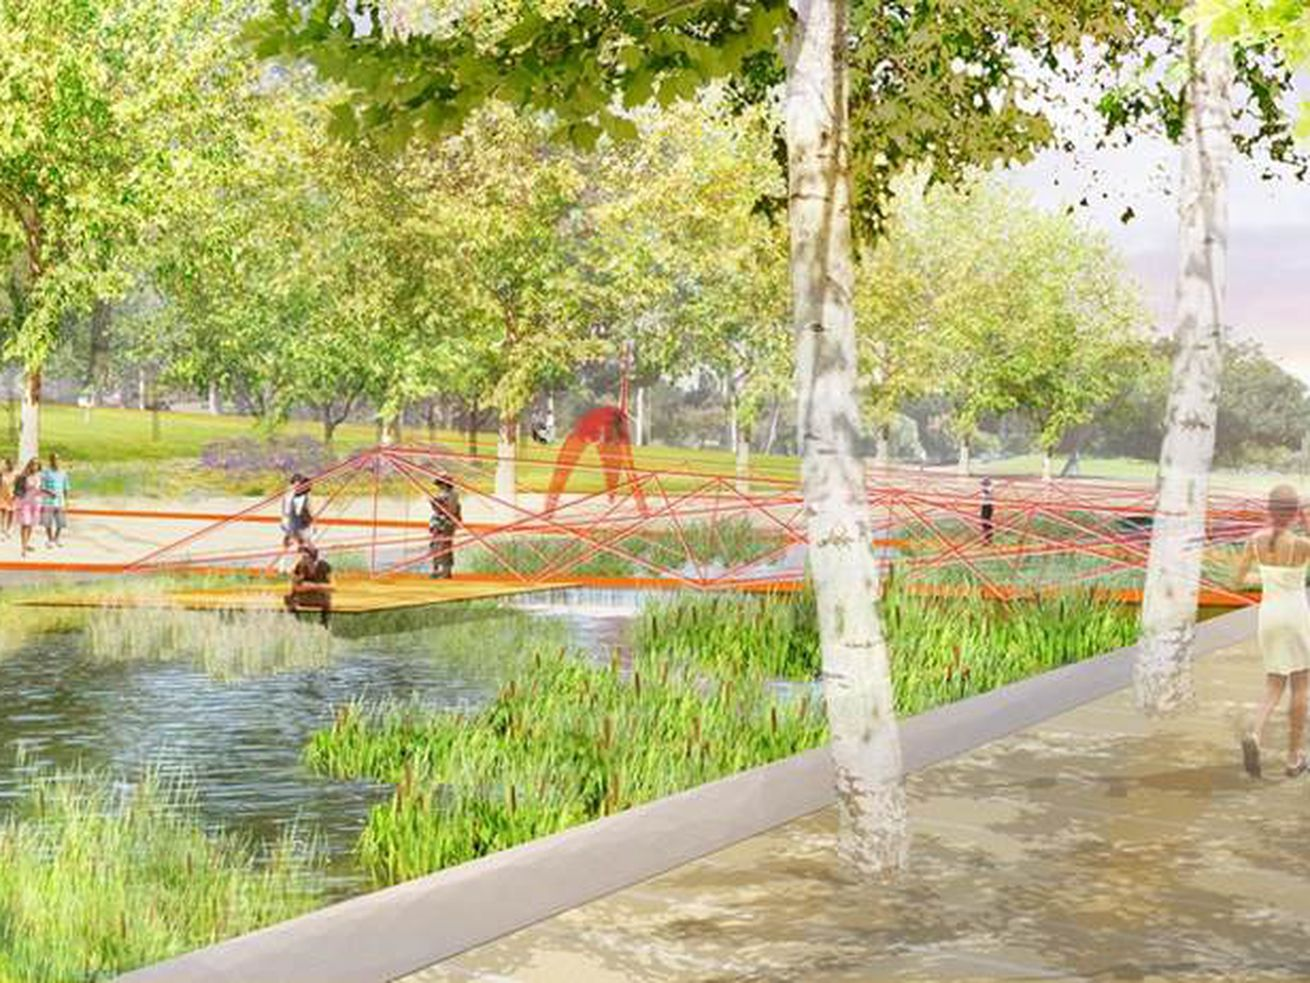 The park's upgrades would include new walking paths and improved lighting.